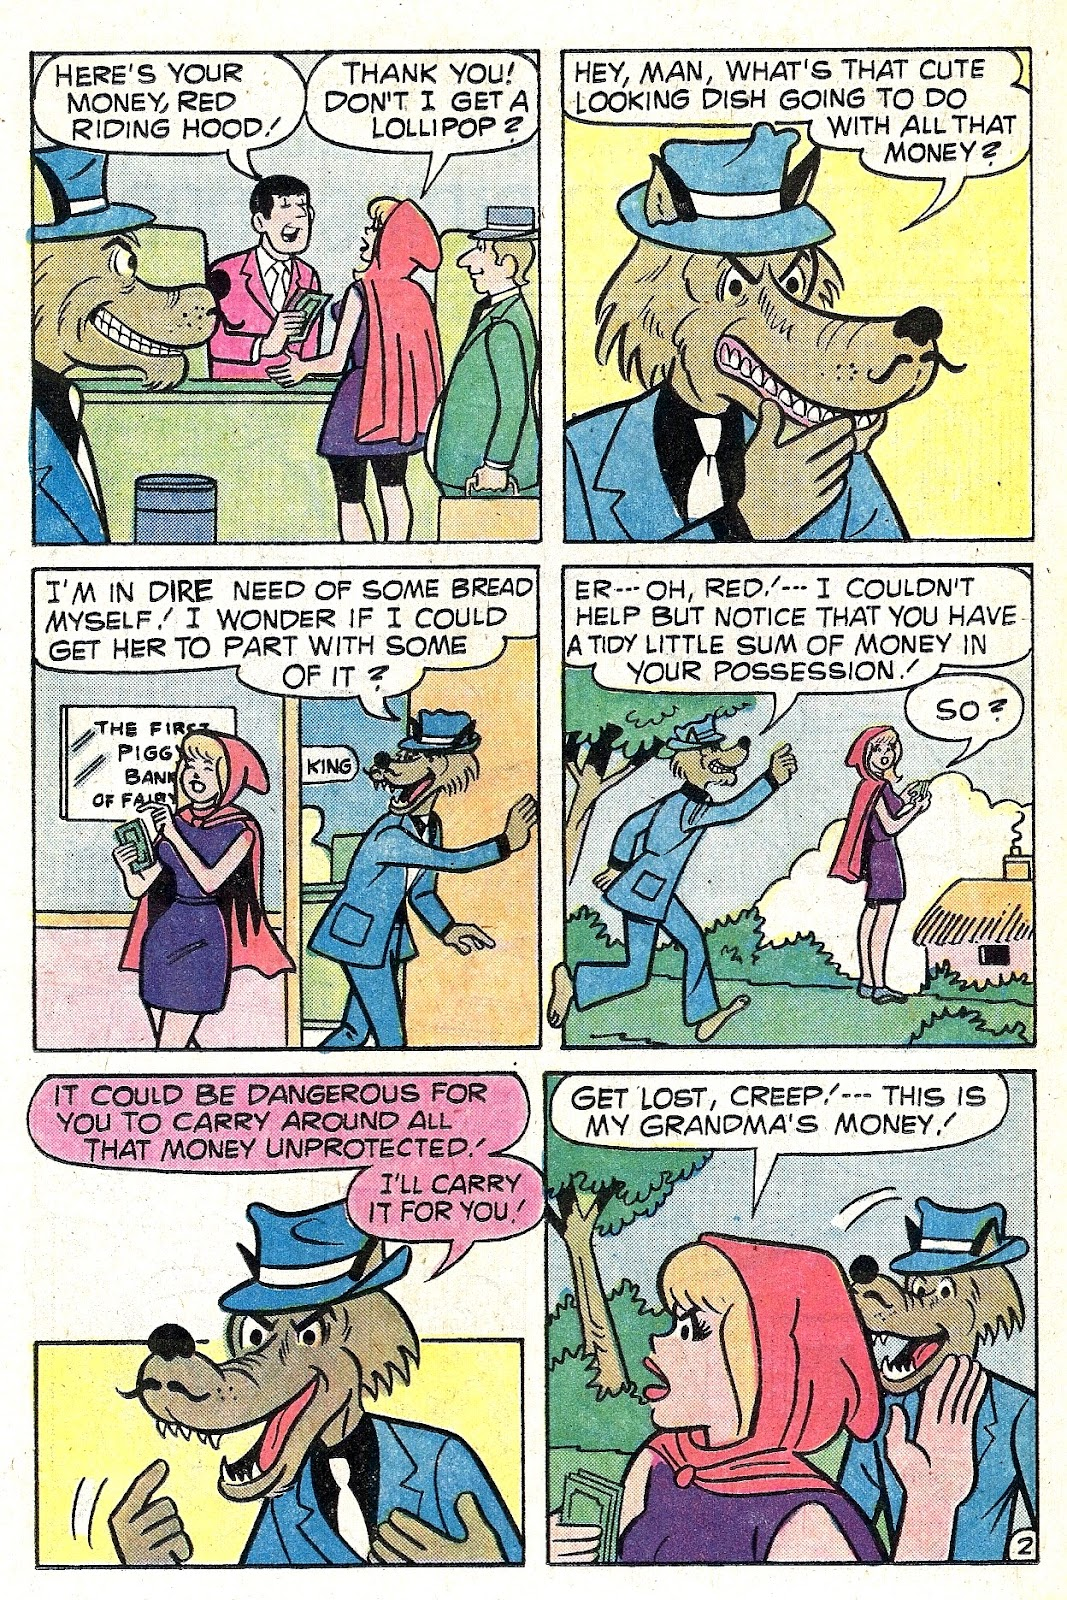 Read online Madhouse Comics comic -  Issue #116 - 14